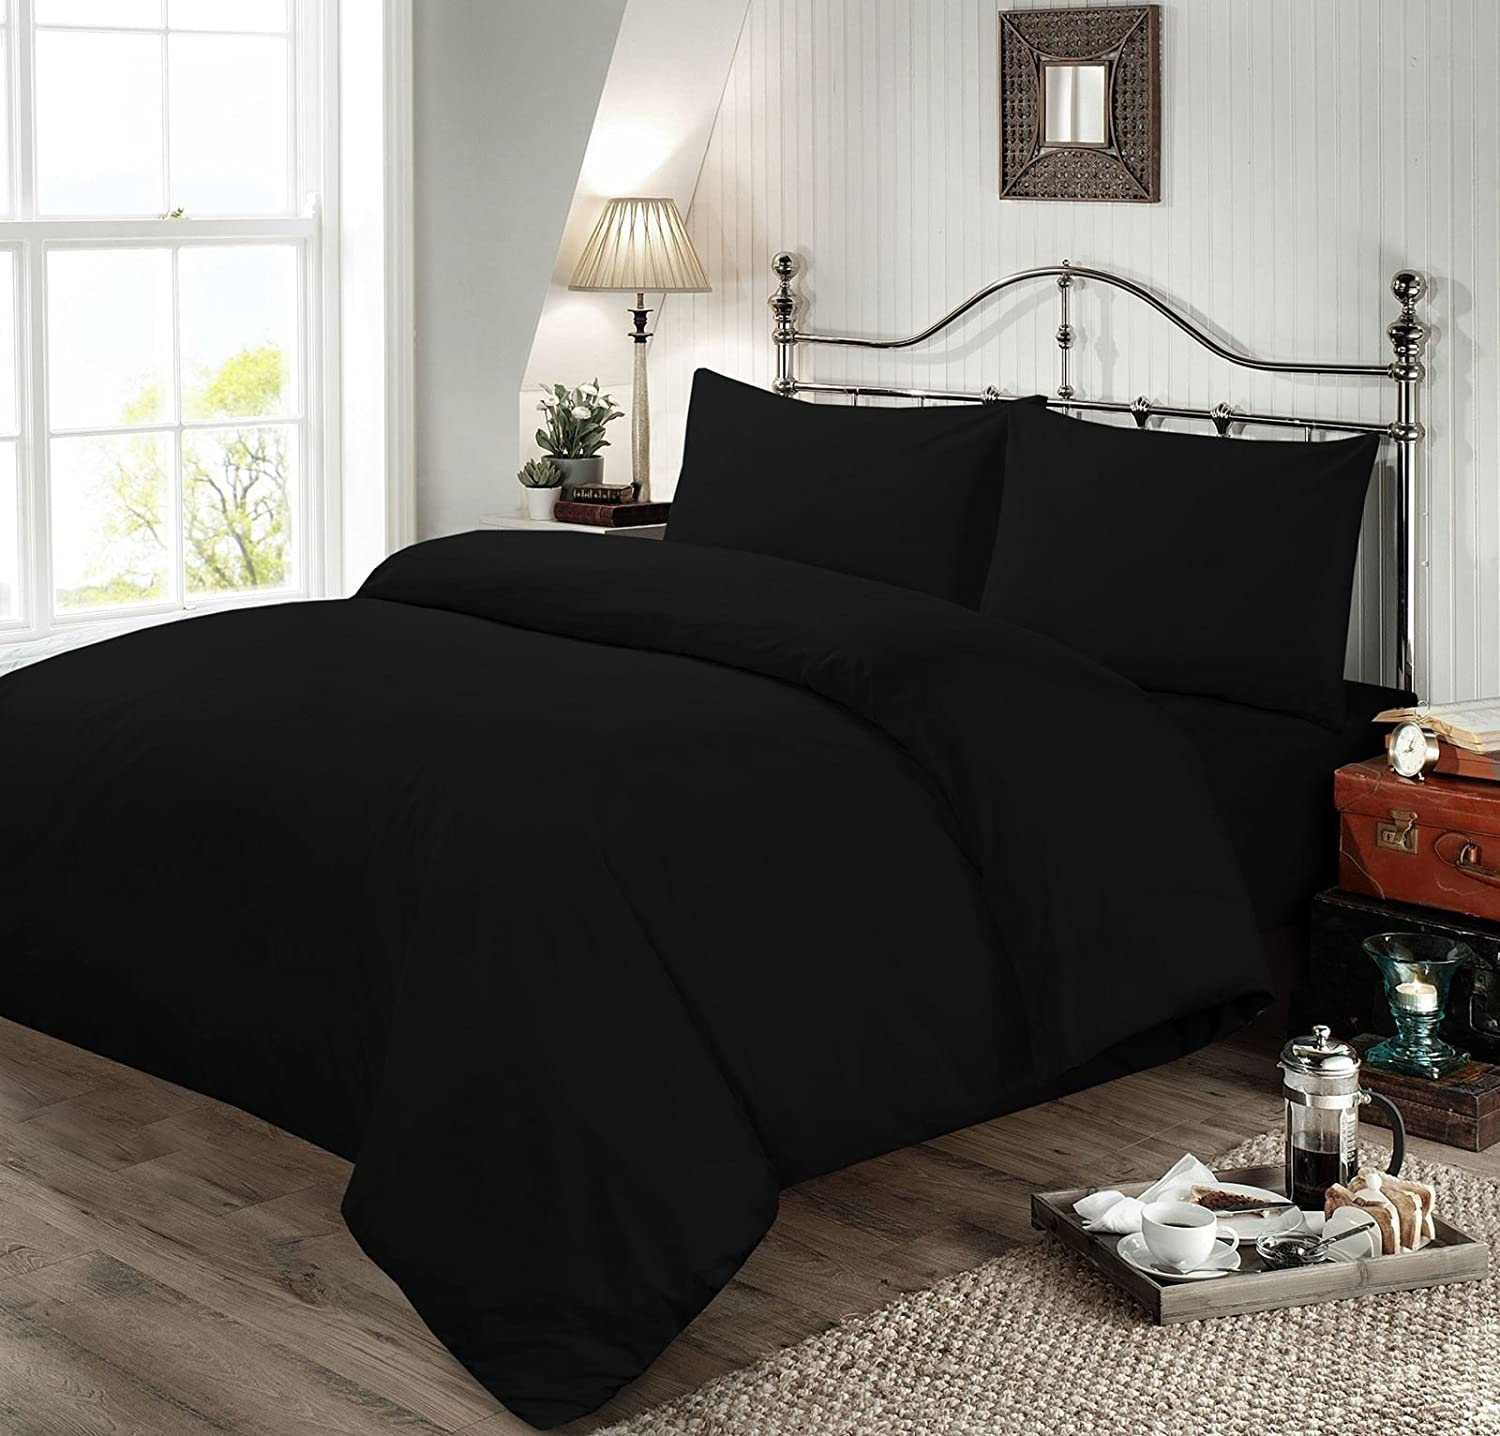 Sunshine Linens Luxury Plain Dyed Duvet set Quilt Duvets Cover Bedding Set Bed Sheets (Black Duvet Cover, Double bed duvet set)